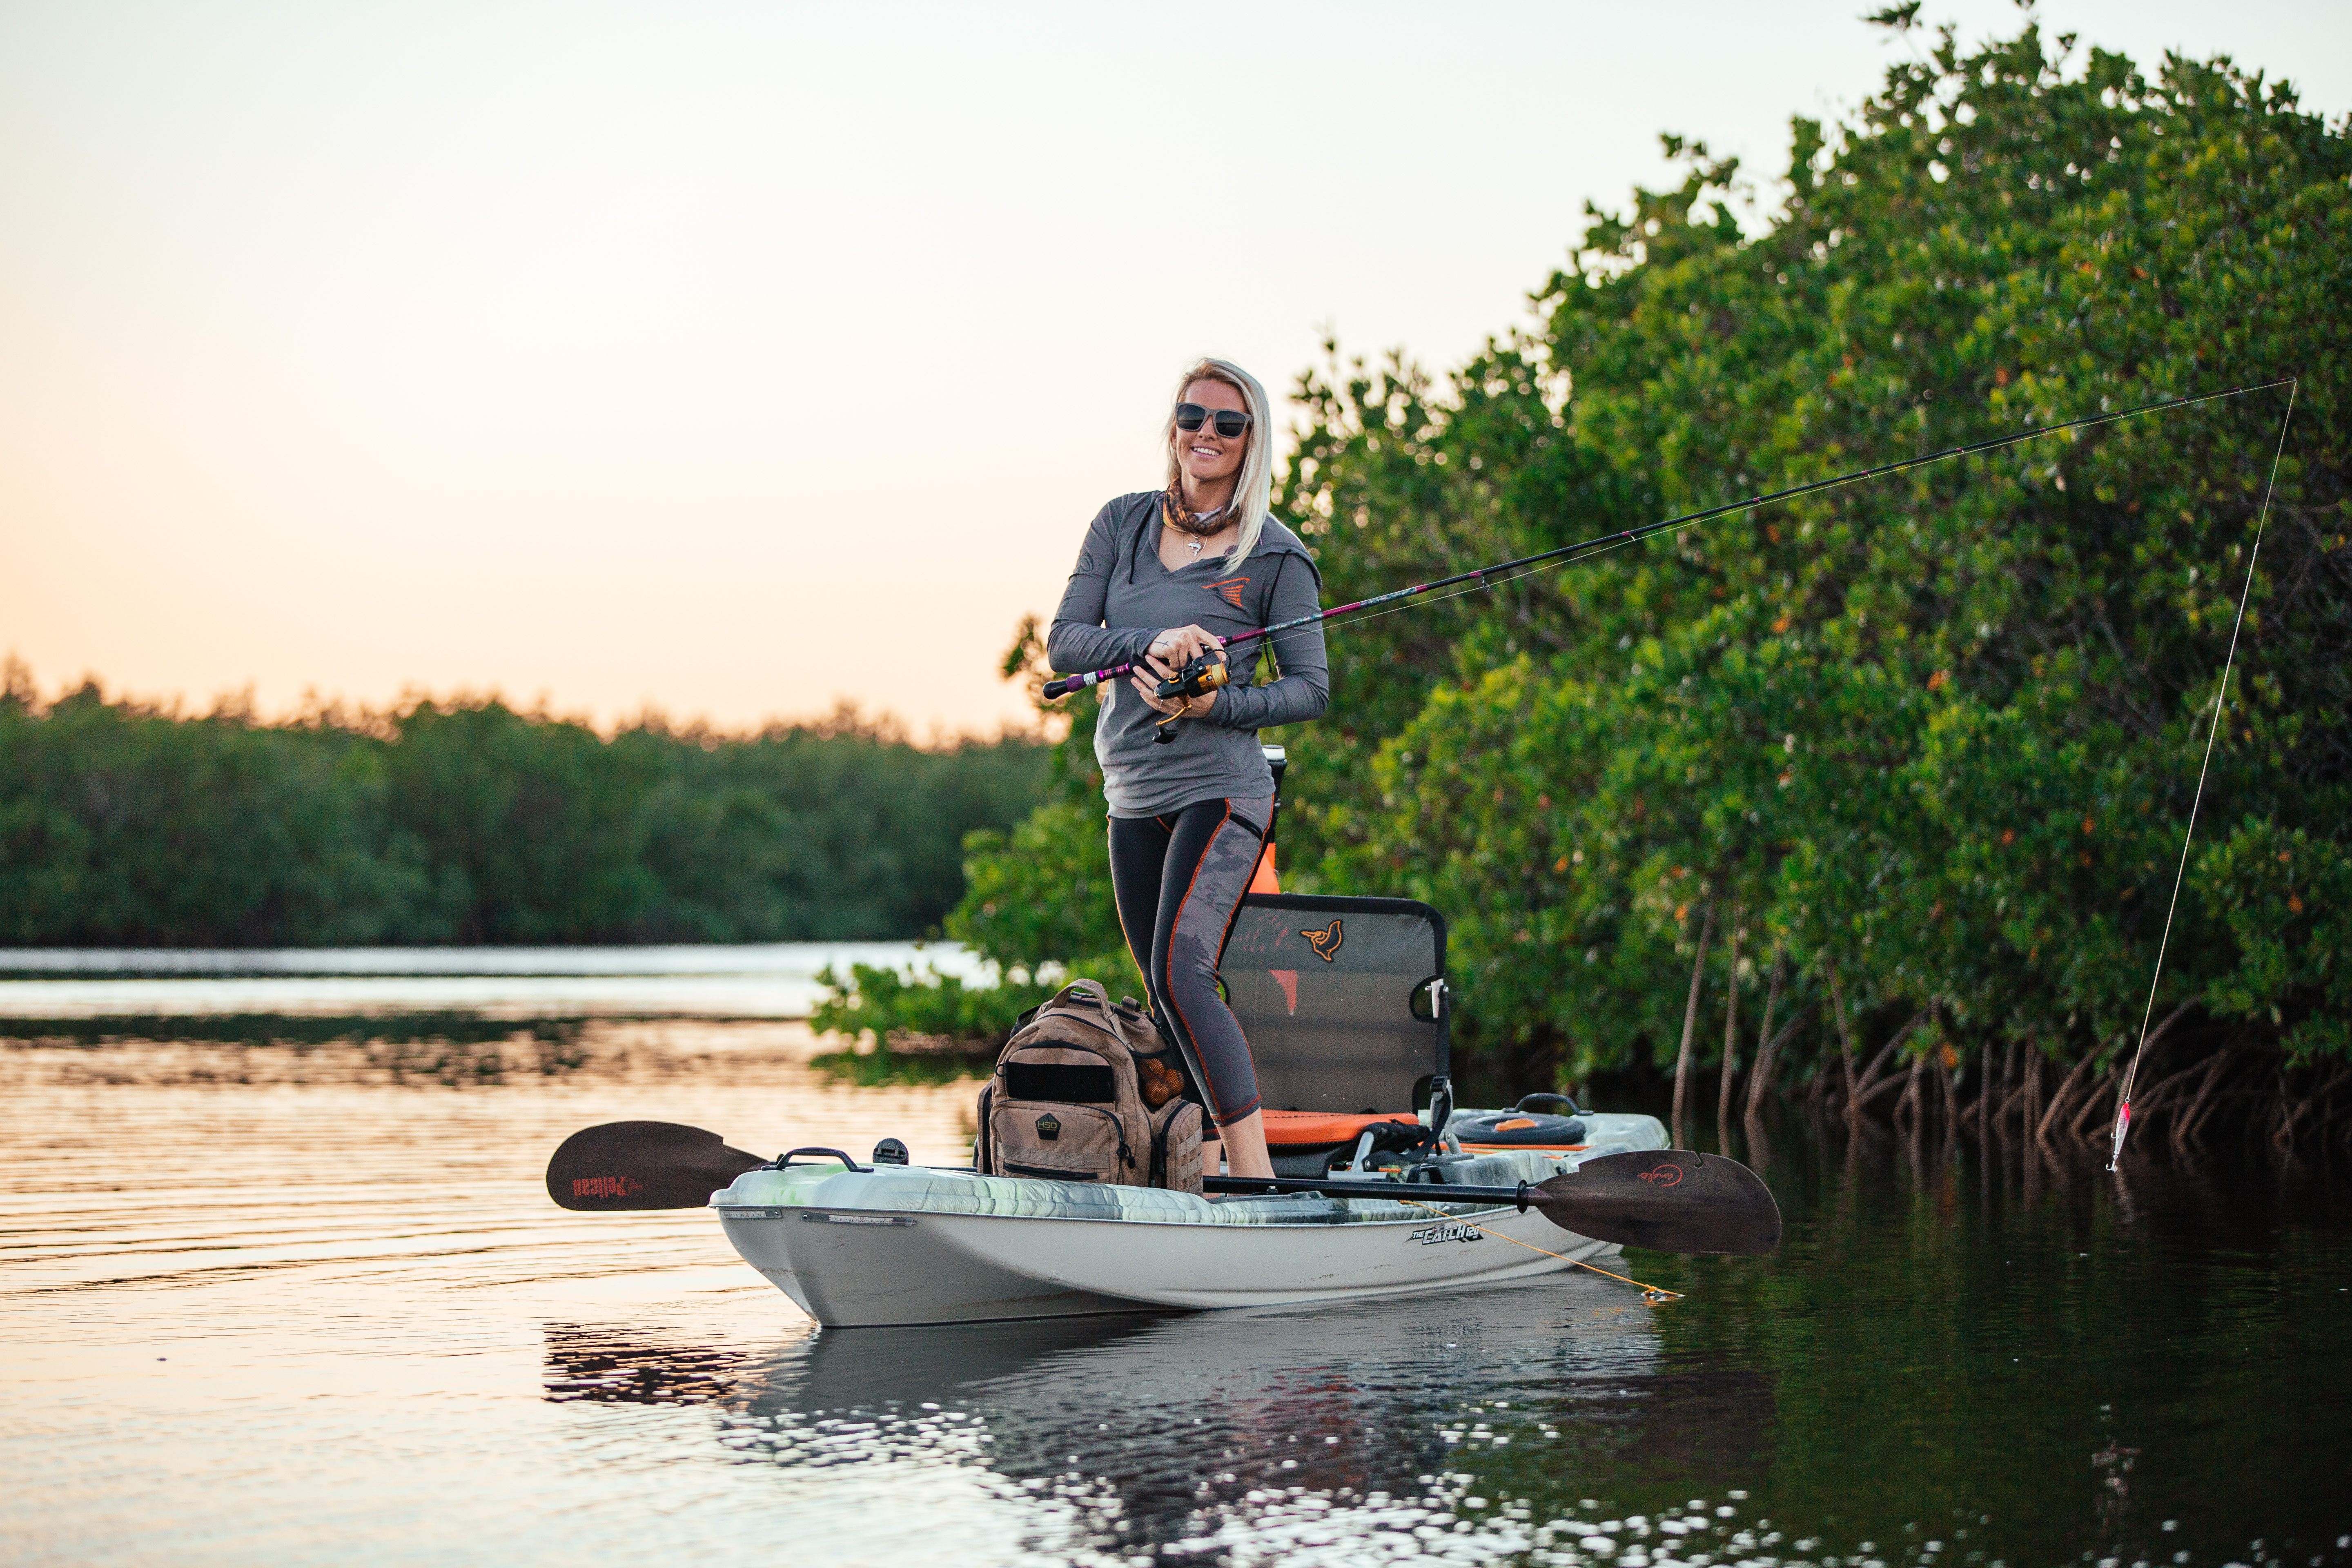 Kayaks: The Catch 120 by Pelican Premium - Image 4621